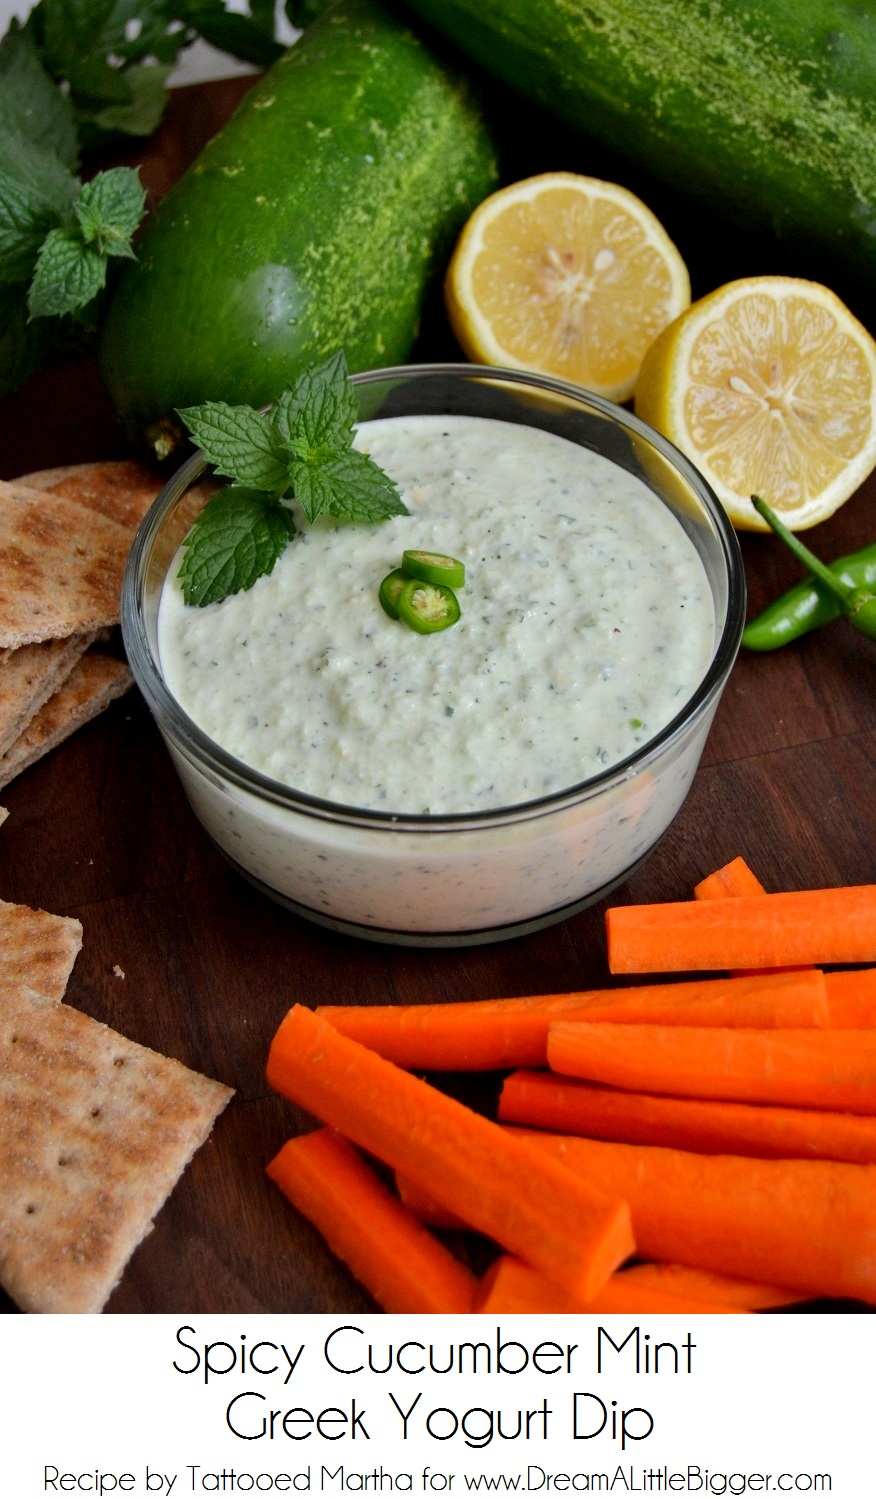 Spicy Cucumber Mint Greek Yogurt Dip at DALB